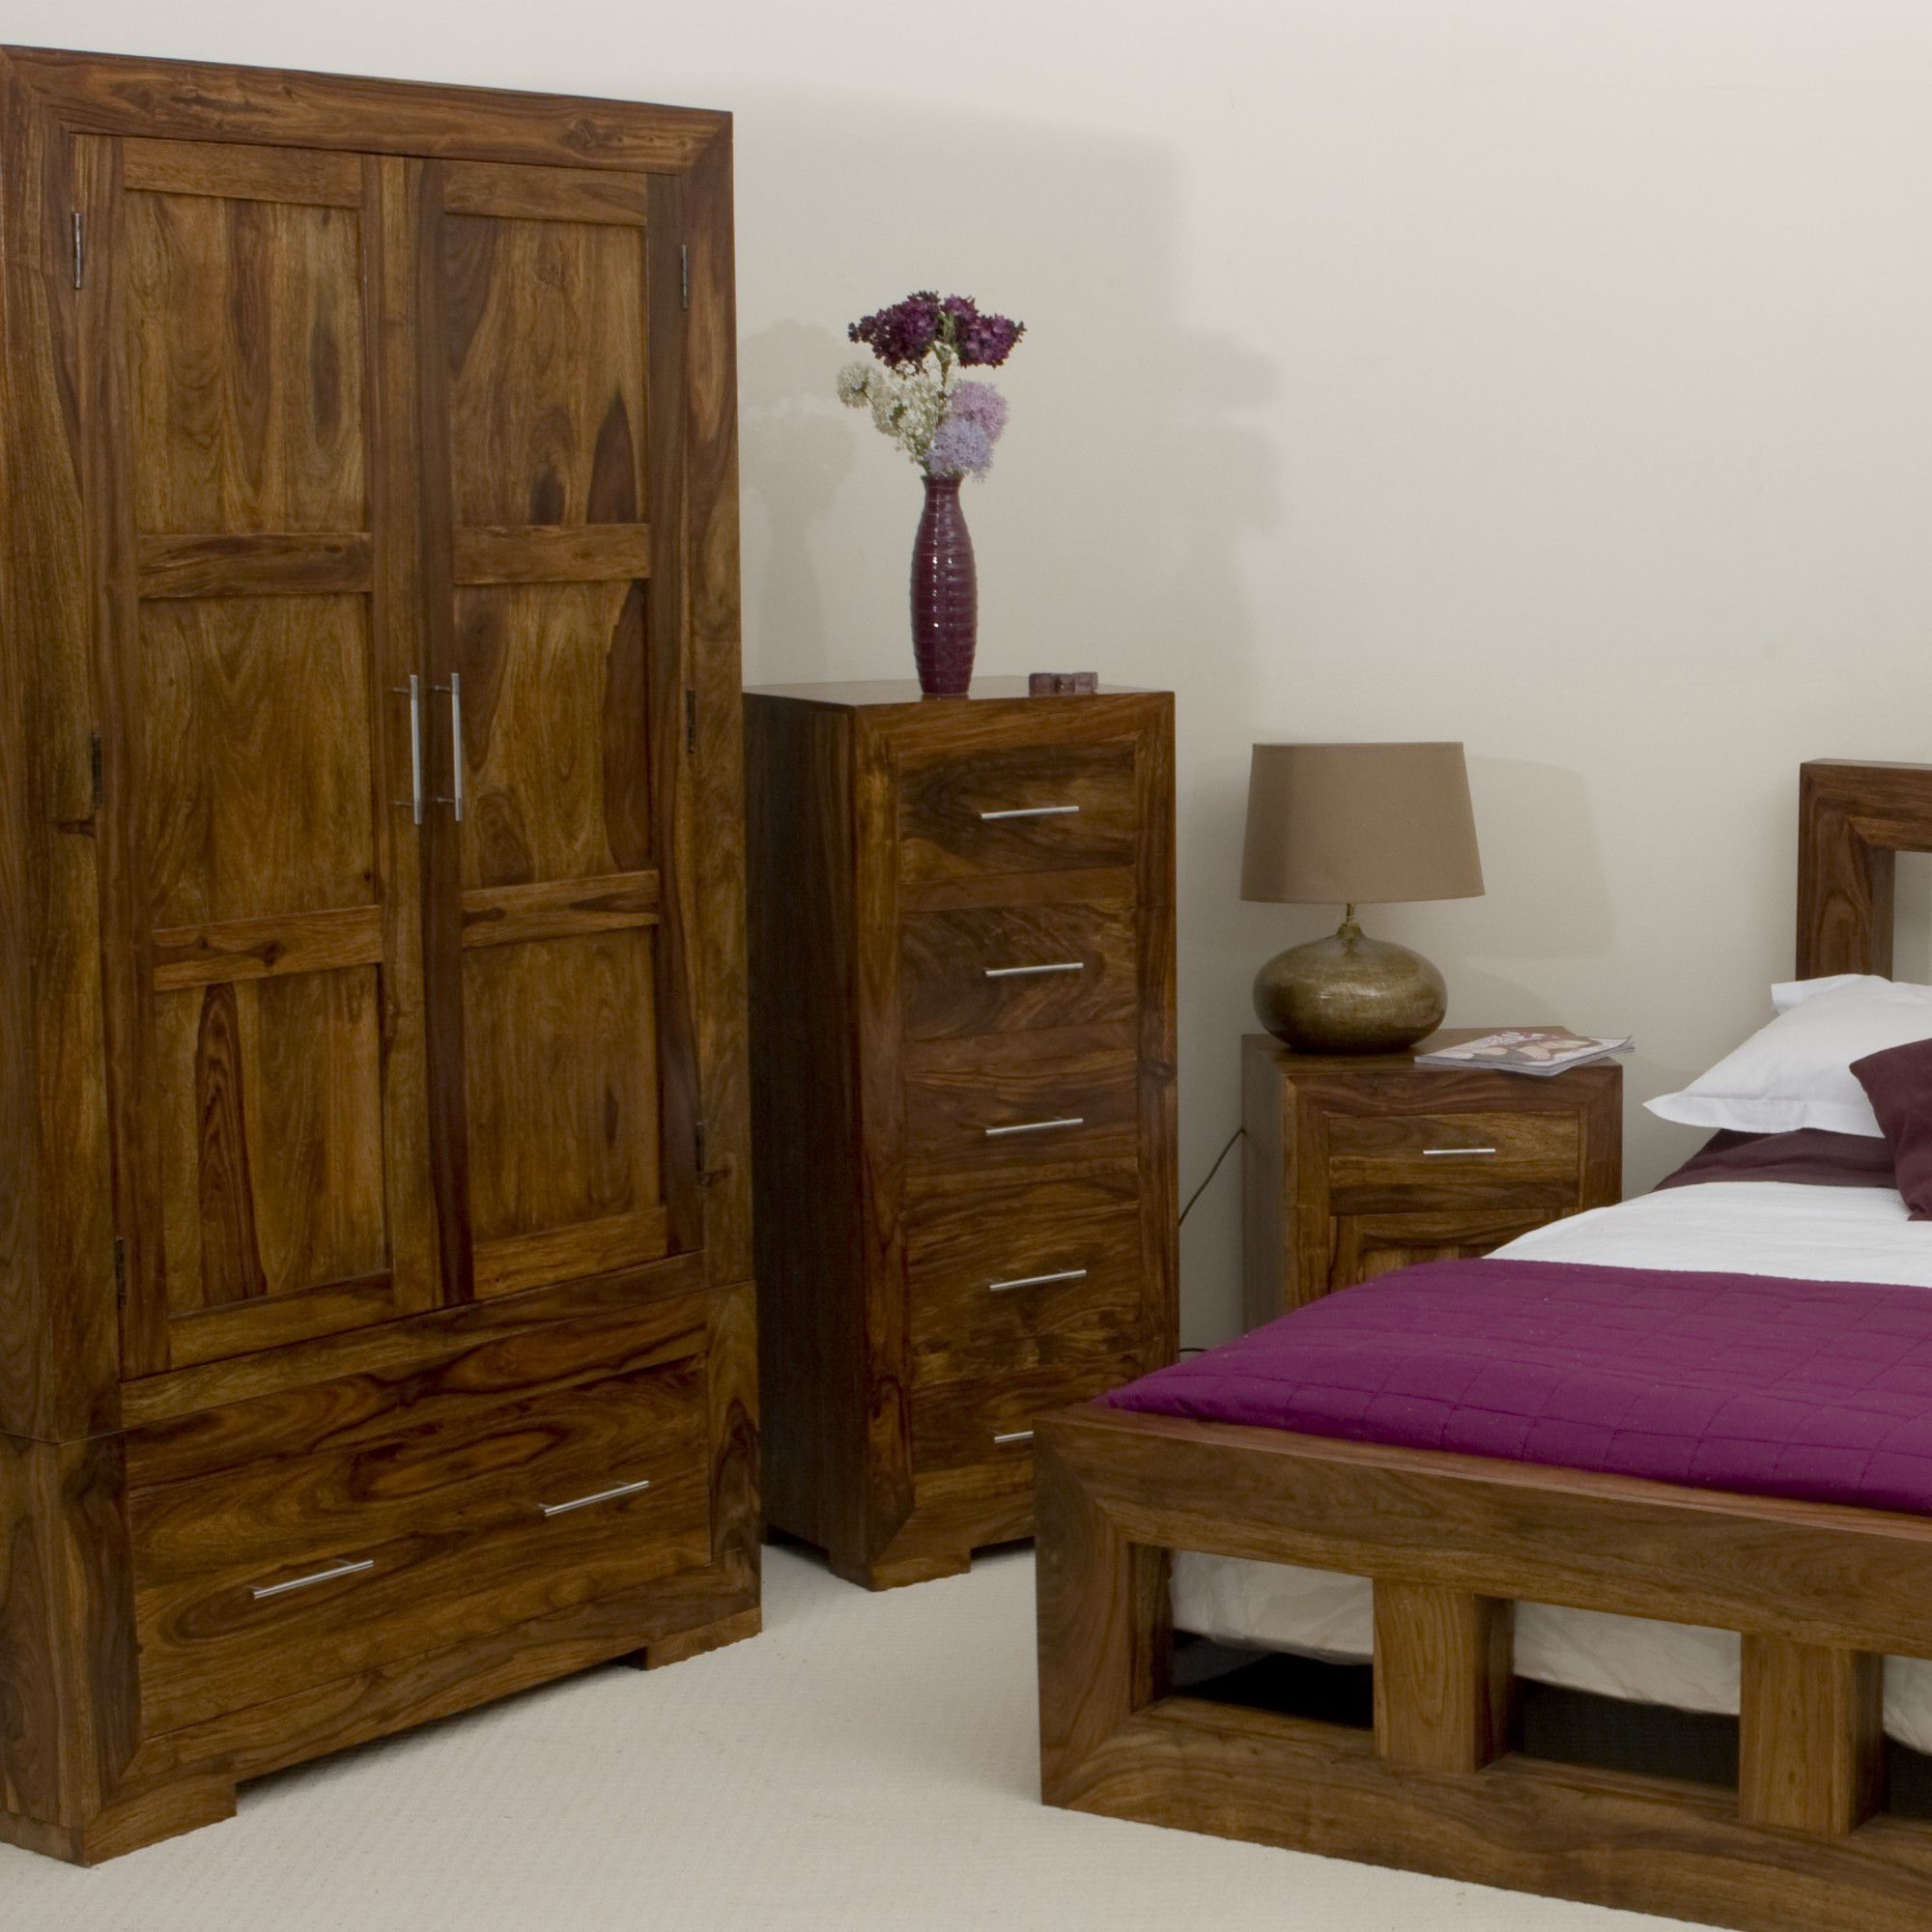 Tesco direct uk save up to 50 today at tesco direct online sale Tesco home bedroom furniture